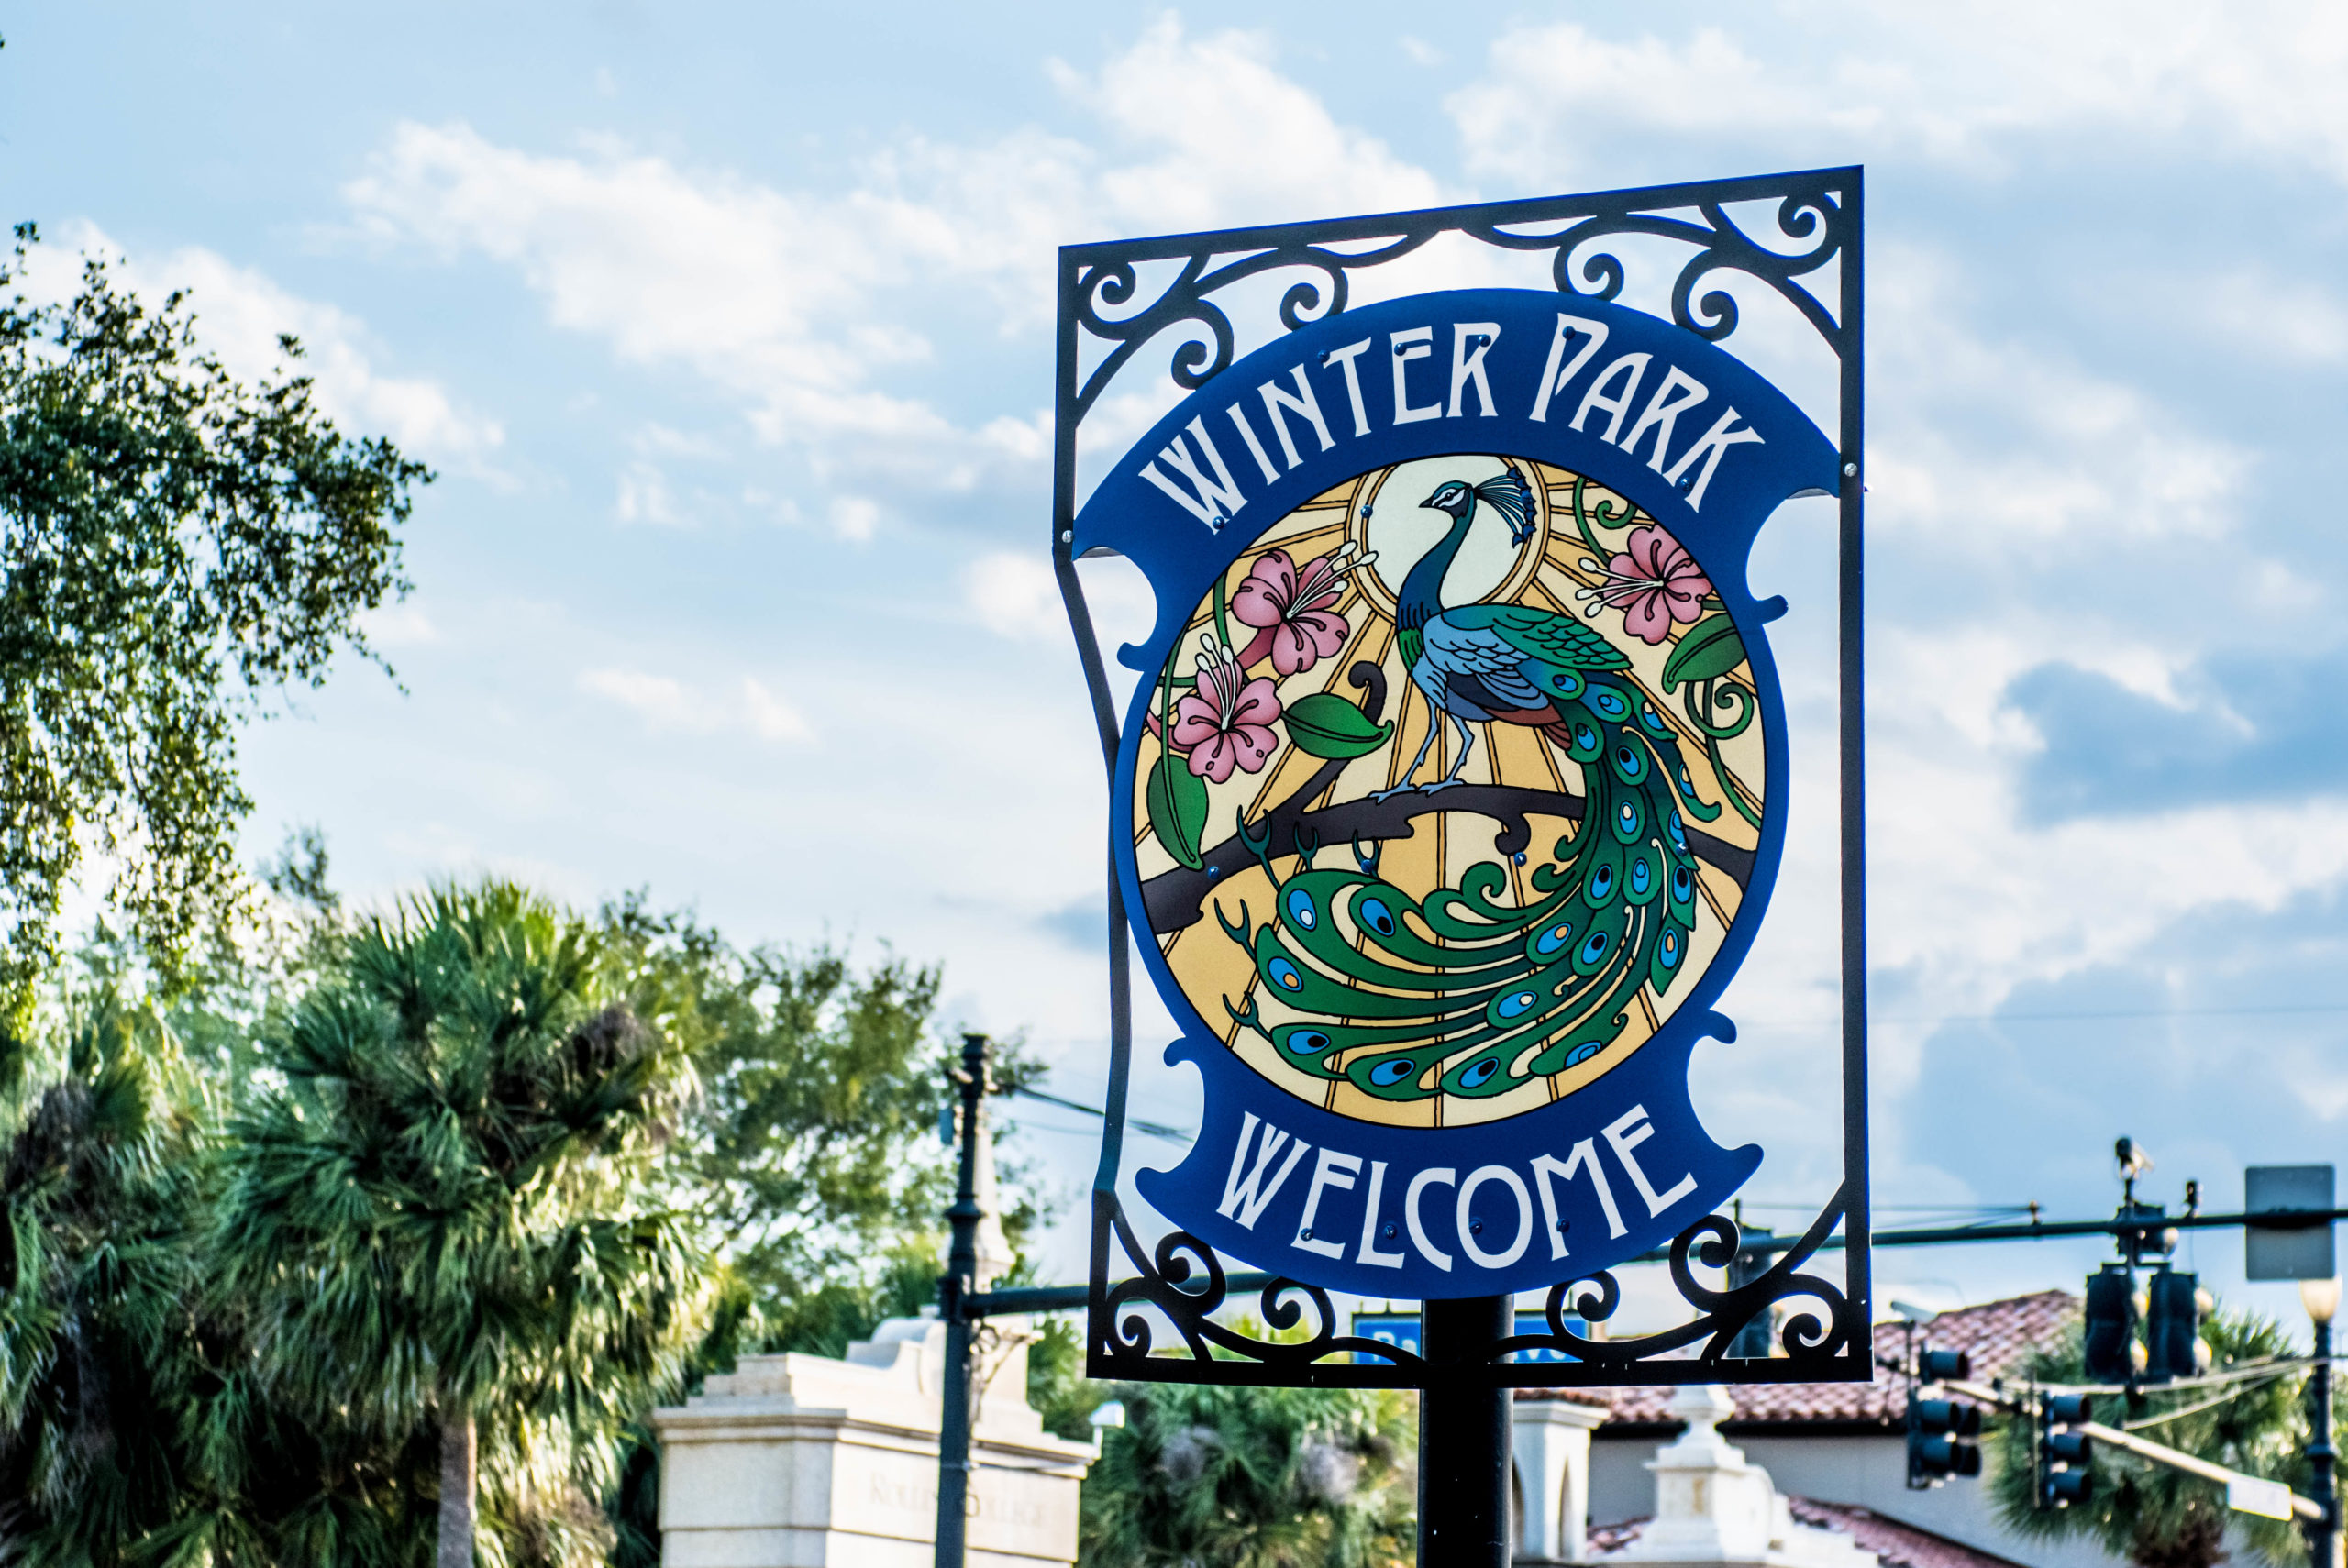 City of Winter Park sign.